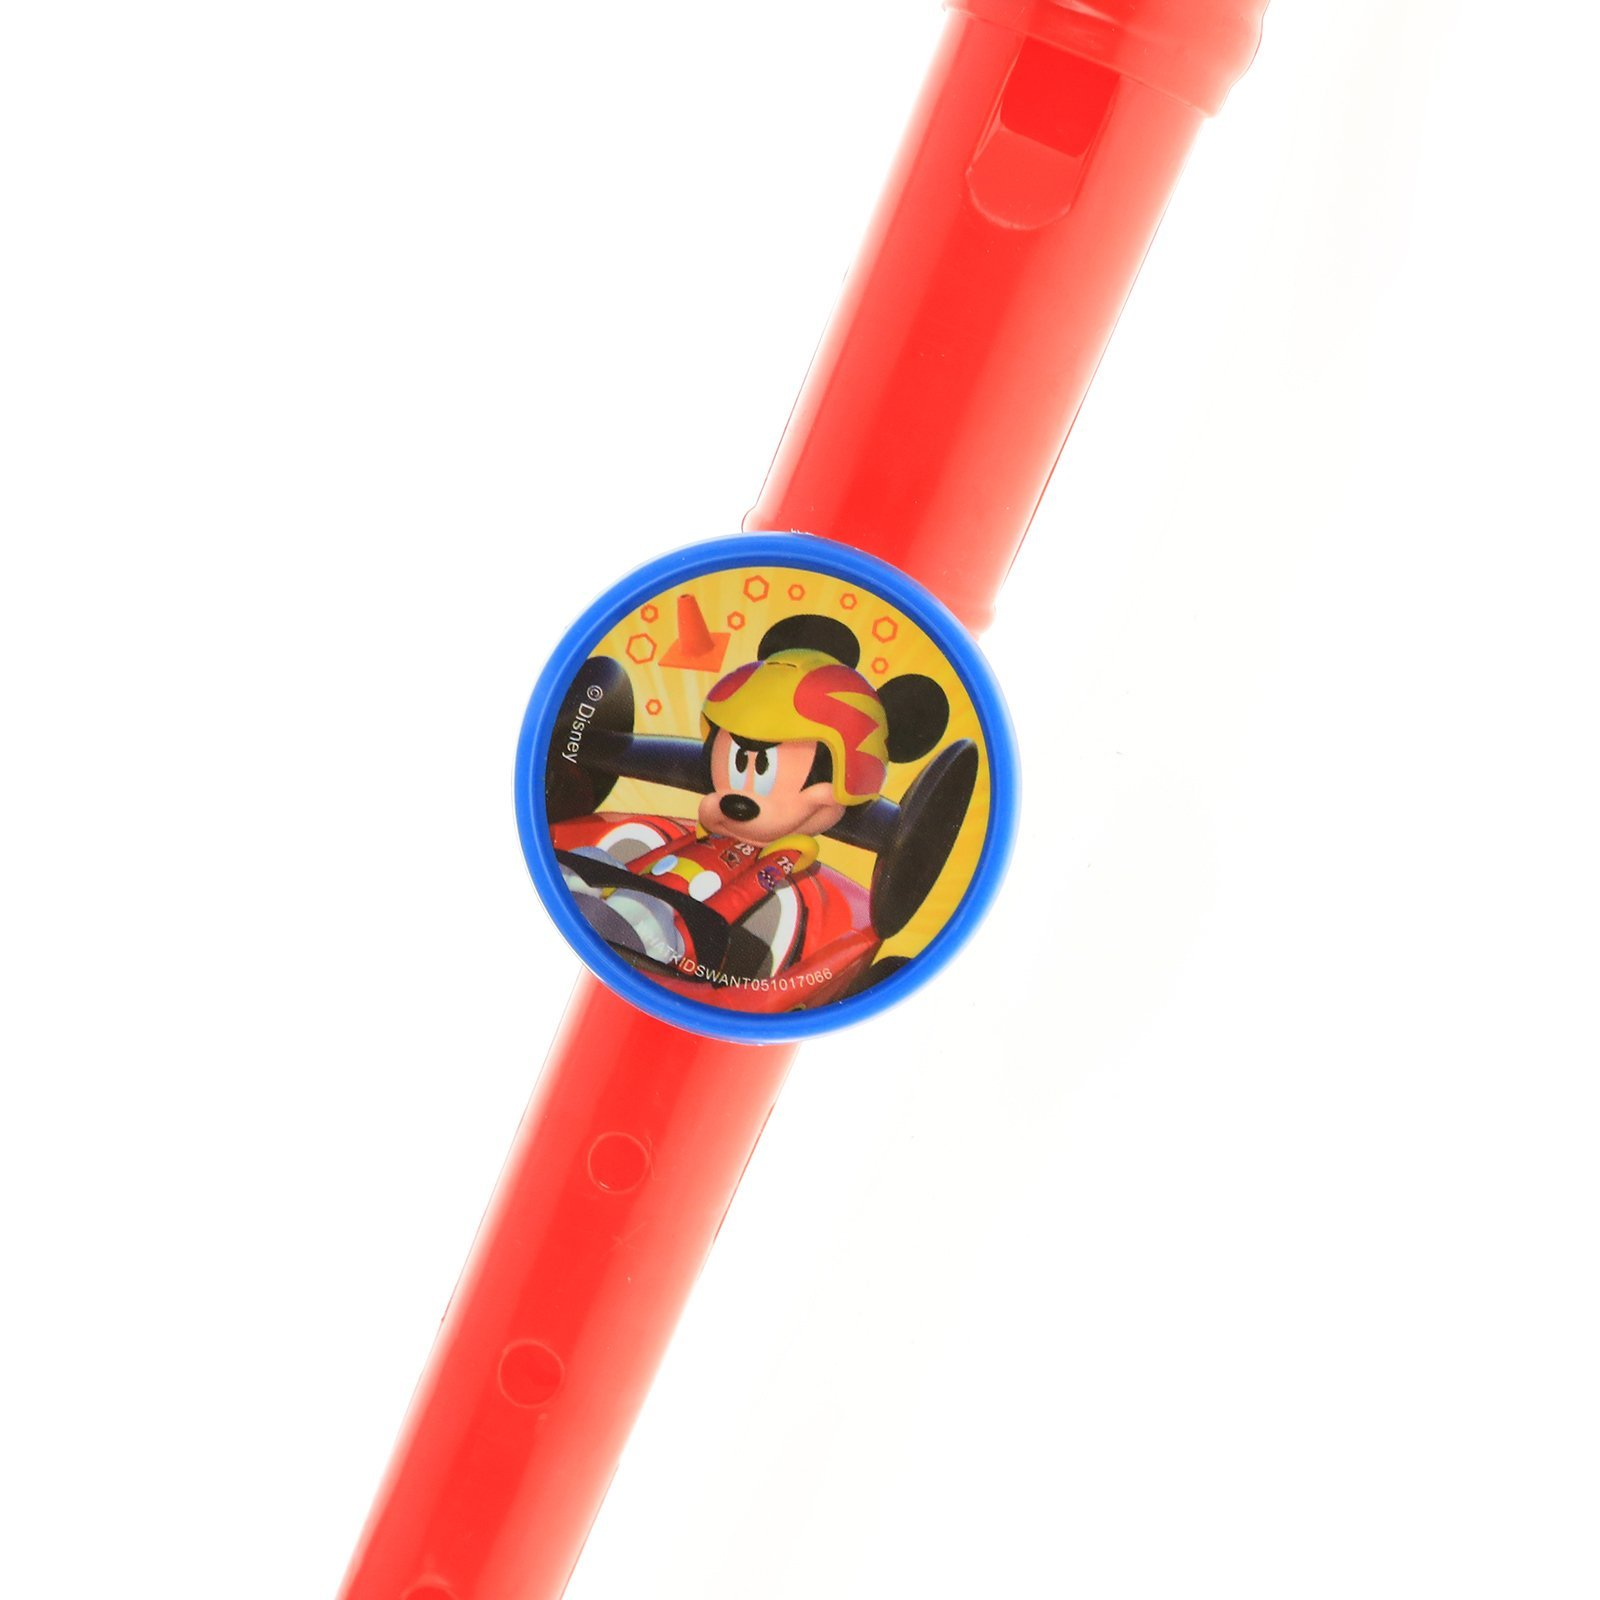 Disney Mickey Mouse Flute Recorder Kids Musical Instrument Educational Toy